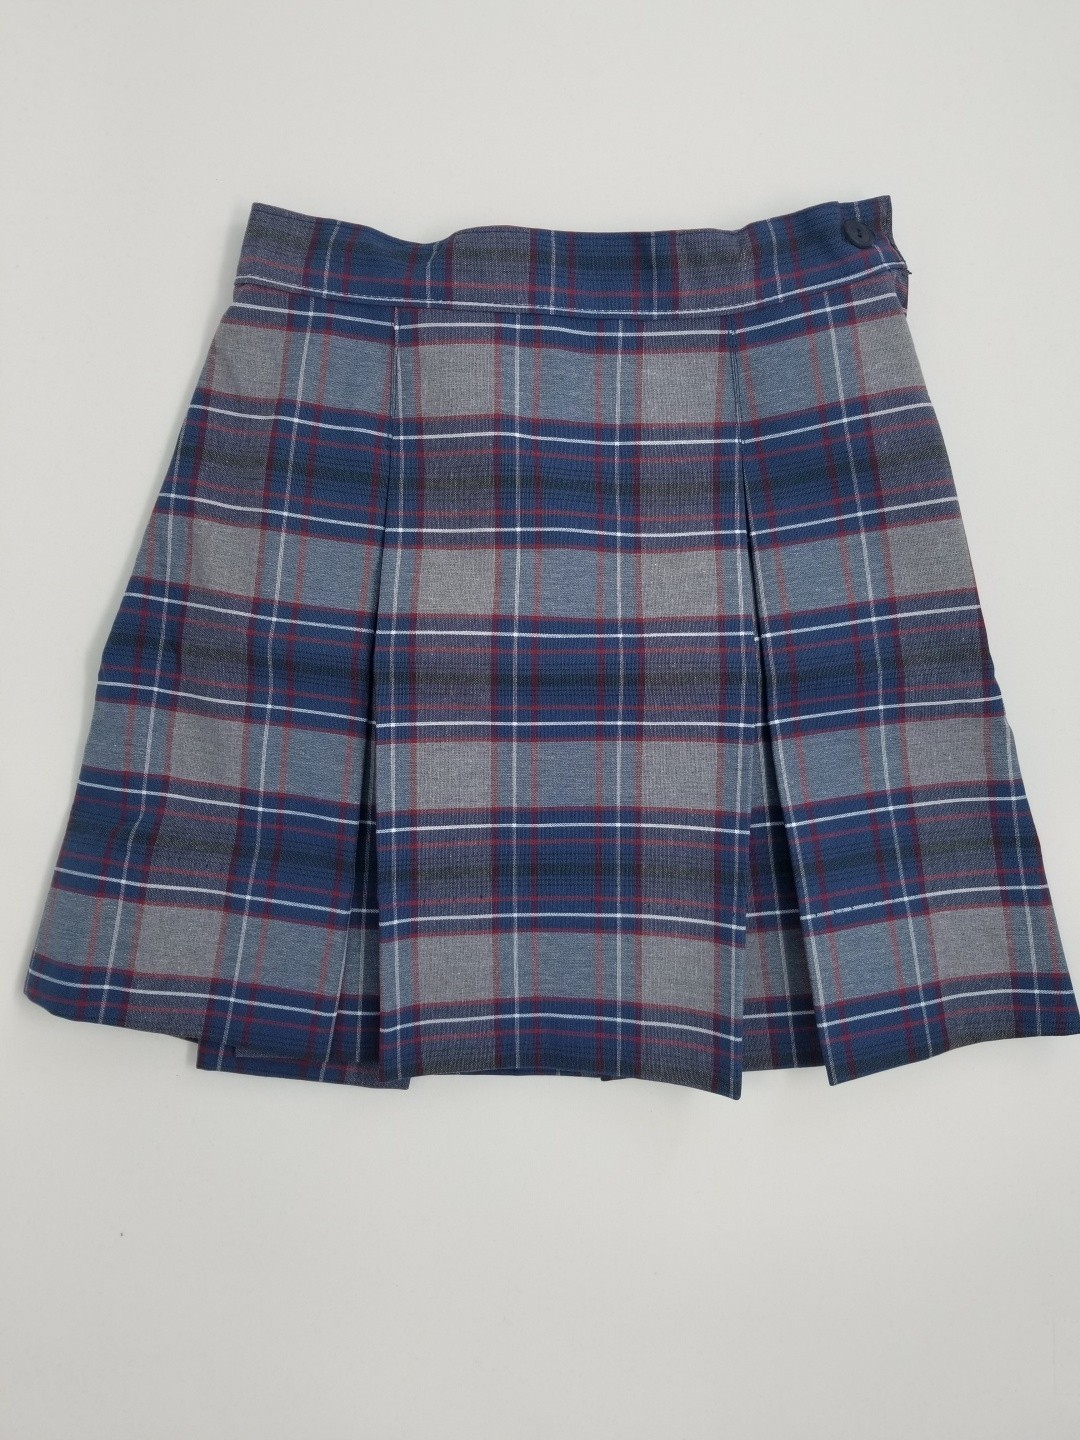 Box Pleat Skirt- Style 48